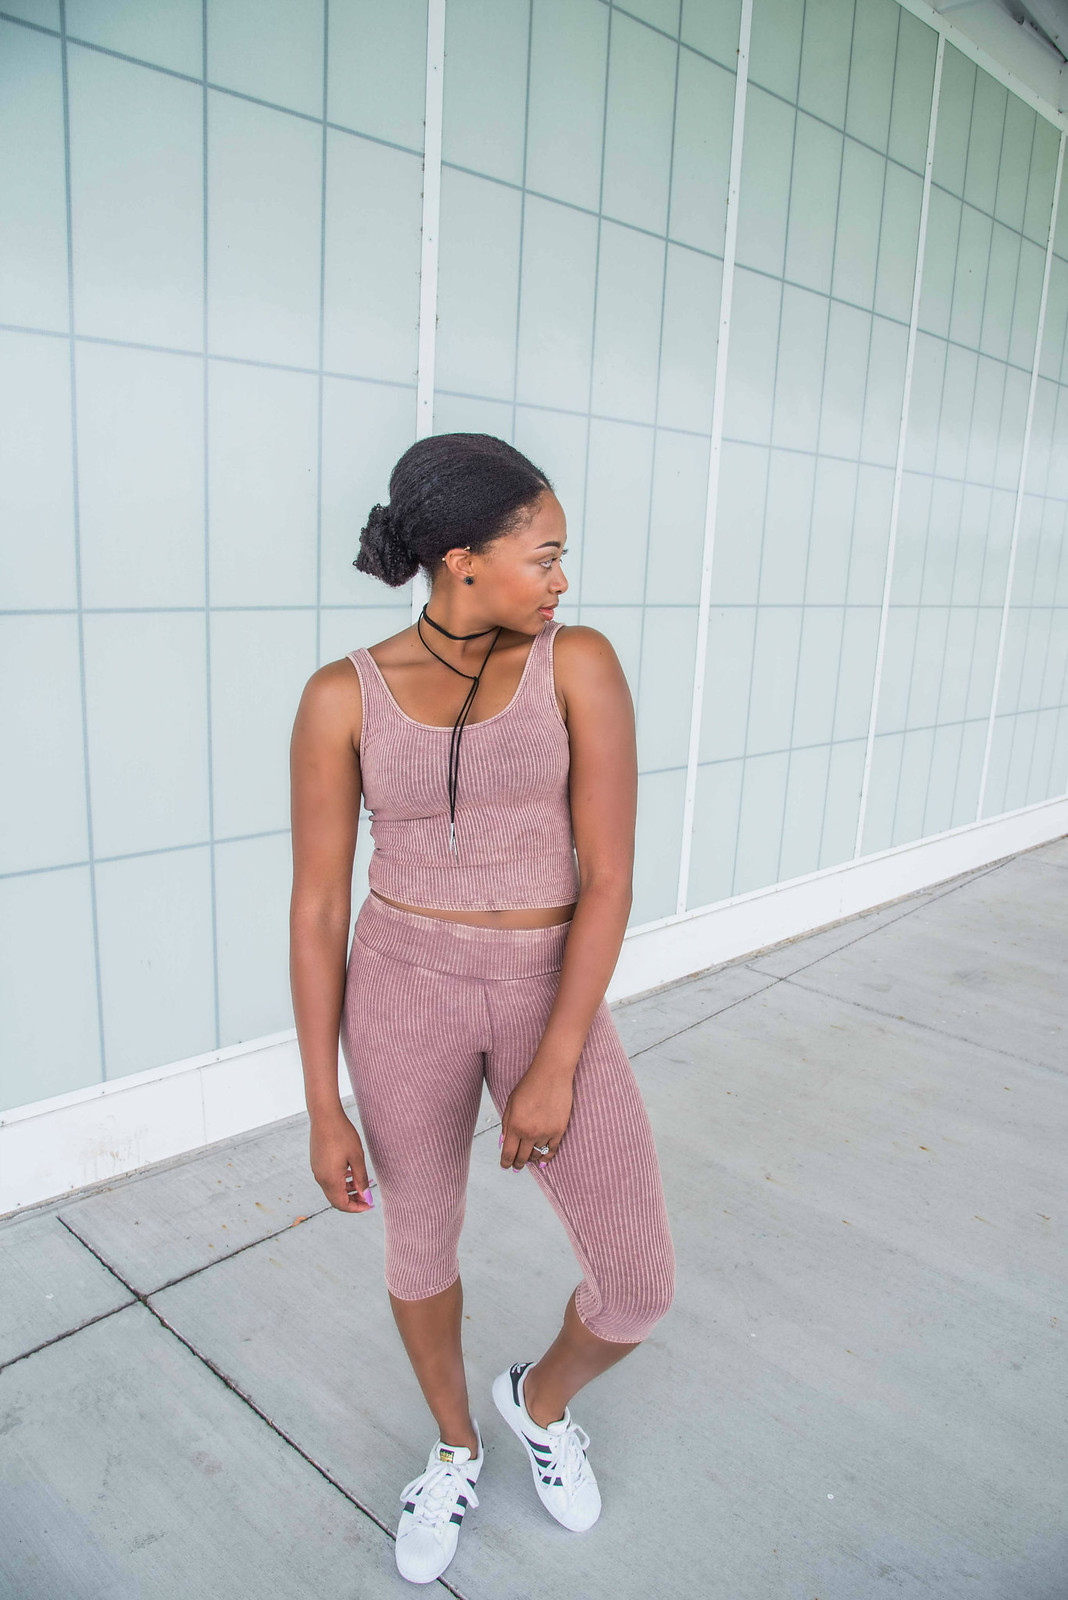 Dallas fashion blogger, candace hampton